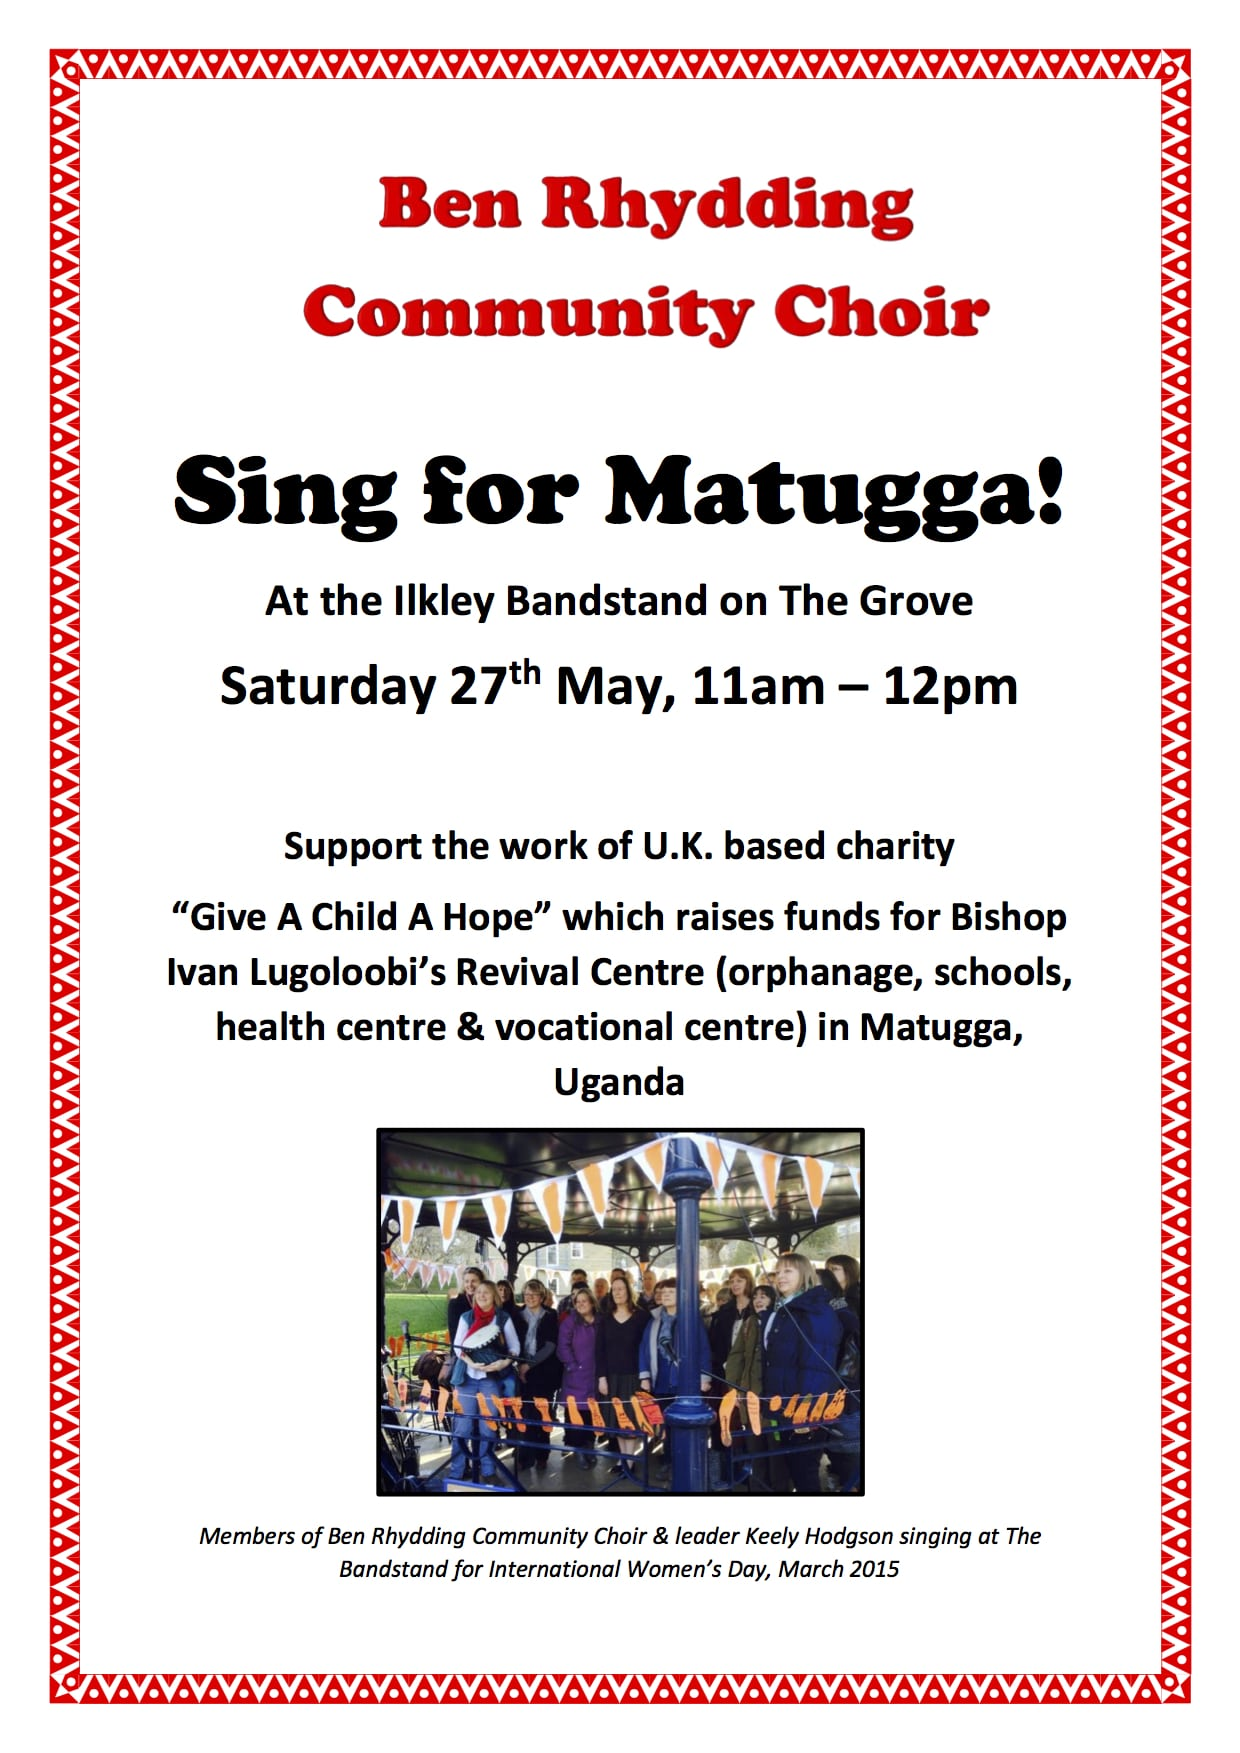 Ben Rhydding Choir at Ilkley Bandstand - 27th May - 11am -12pm